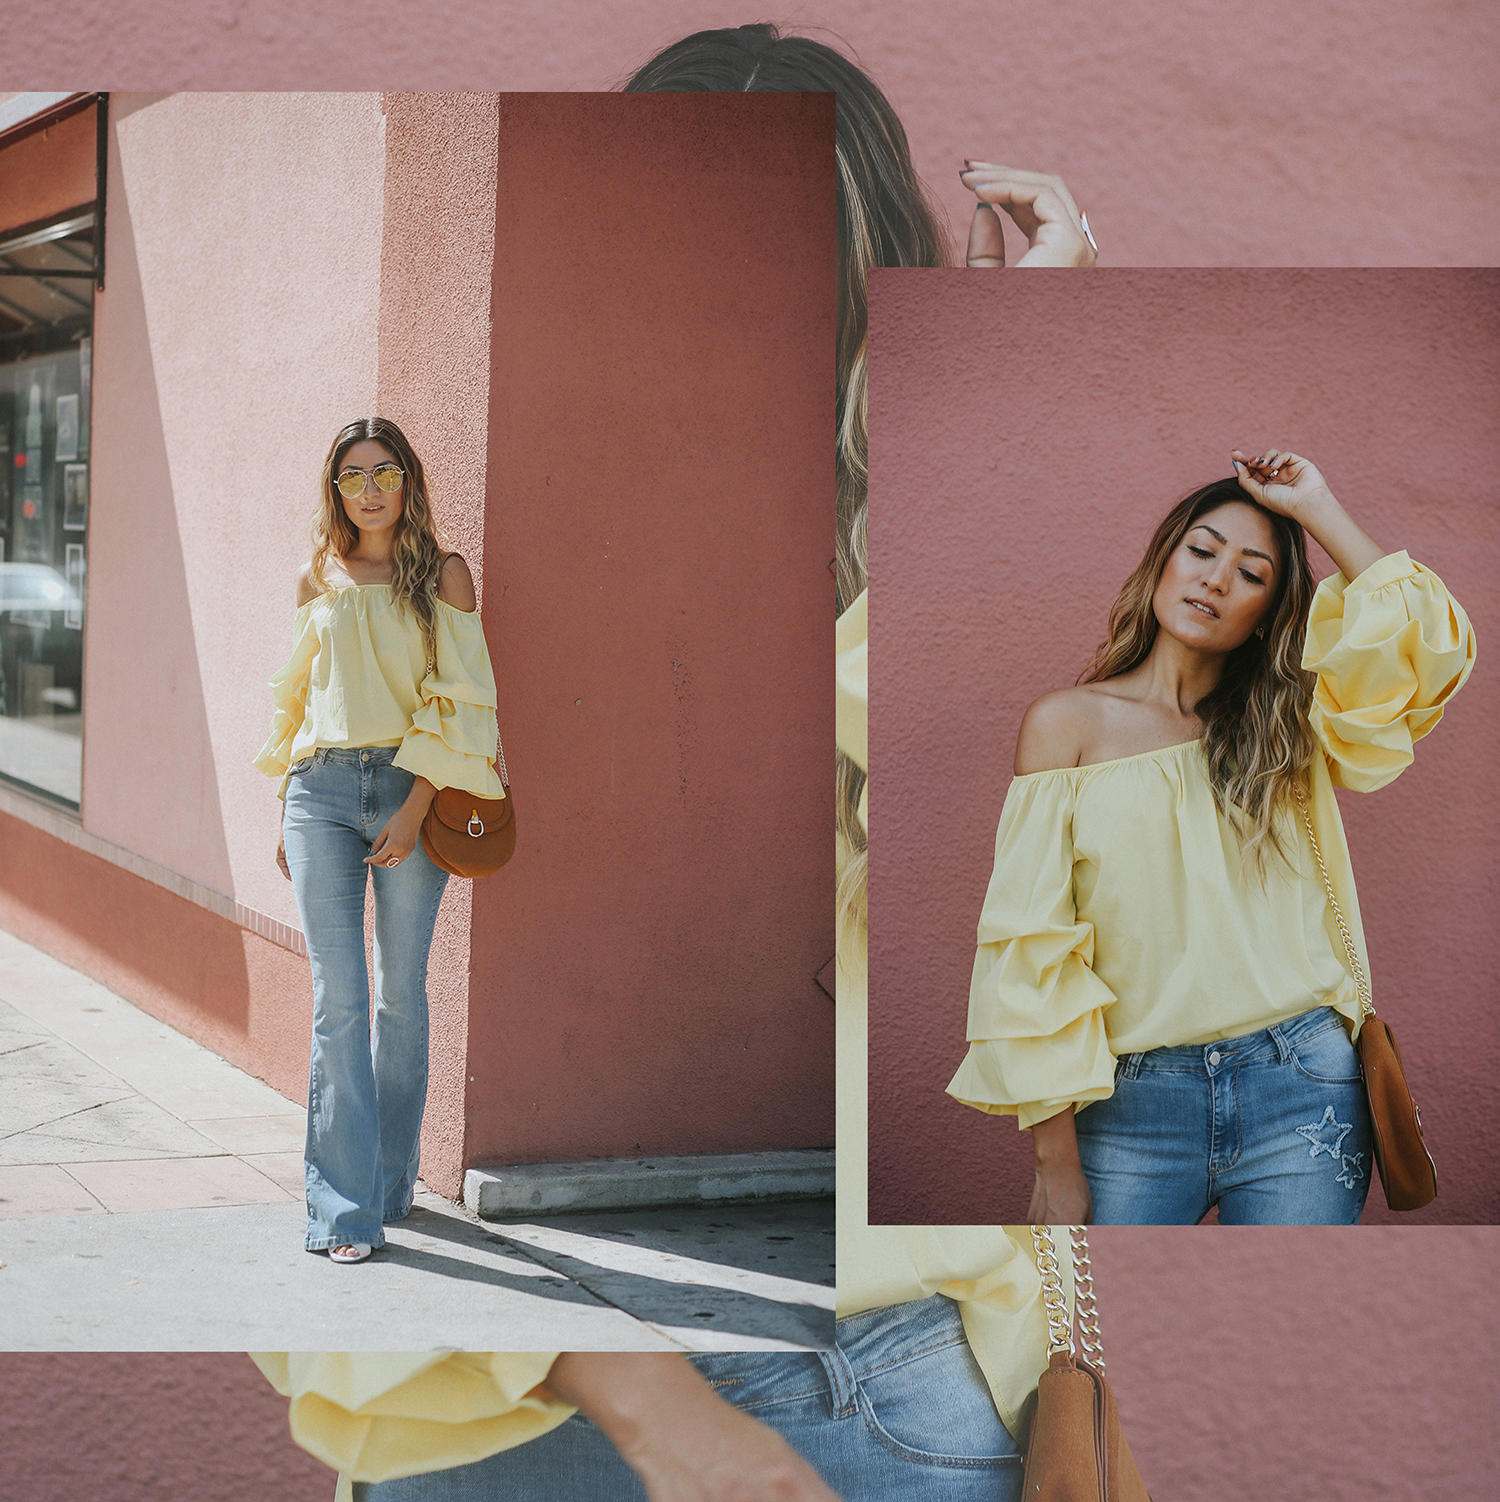 A September Summer, Yellow, September, Summer, Sunglasses, ootd, melrodstyle, la blogger, street style, blogger, blogger style, fashion,